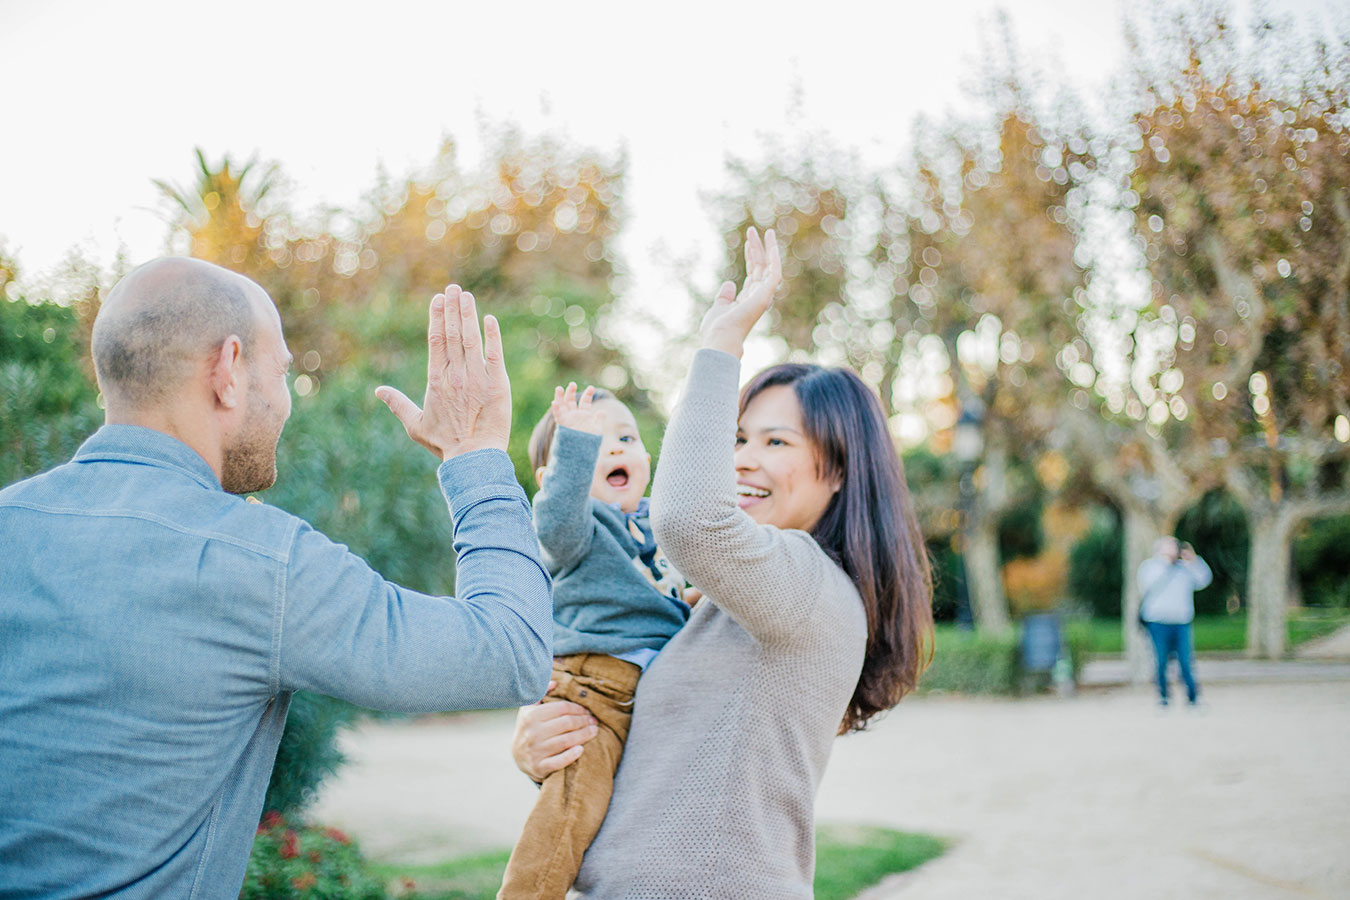 Barcelona family photo shoot - Lena Karelova Photography